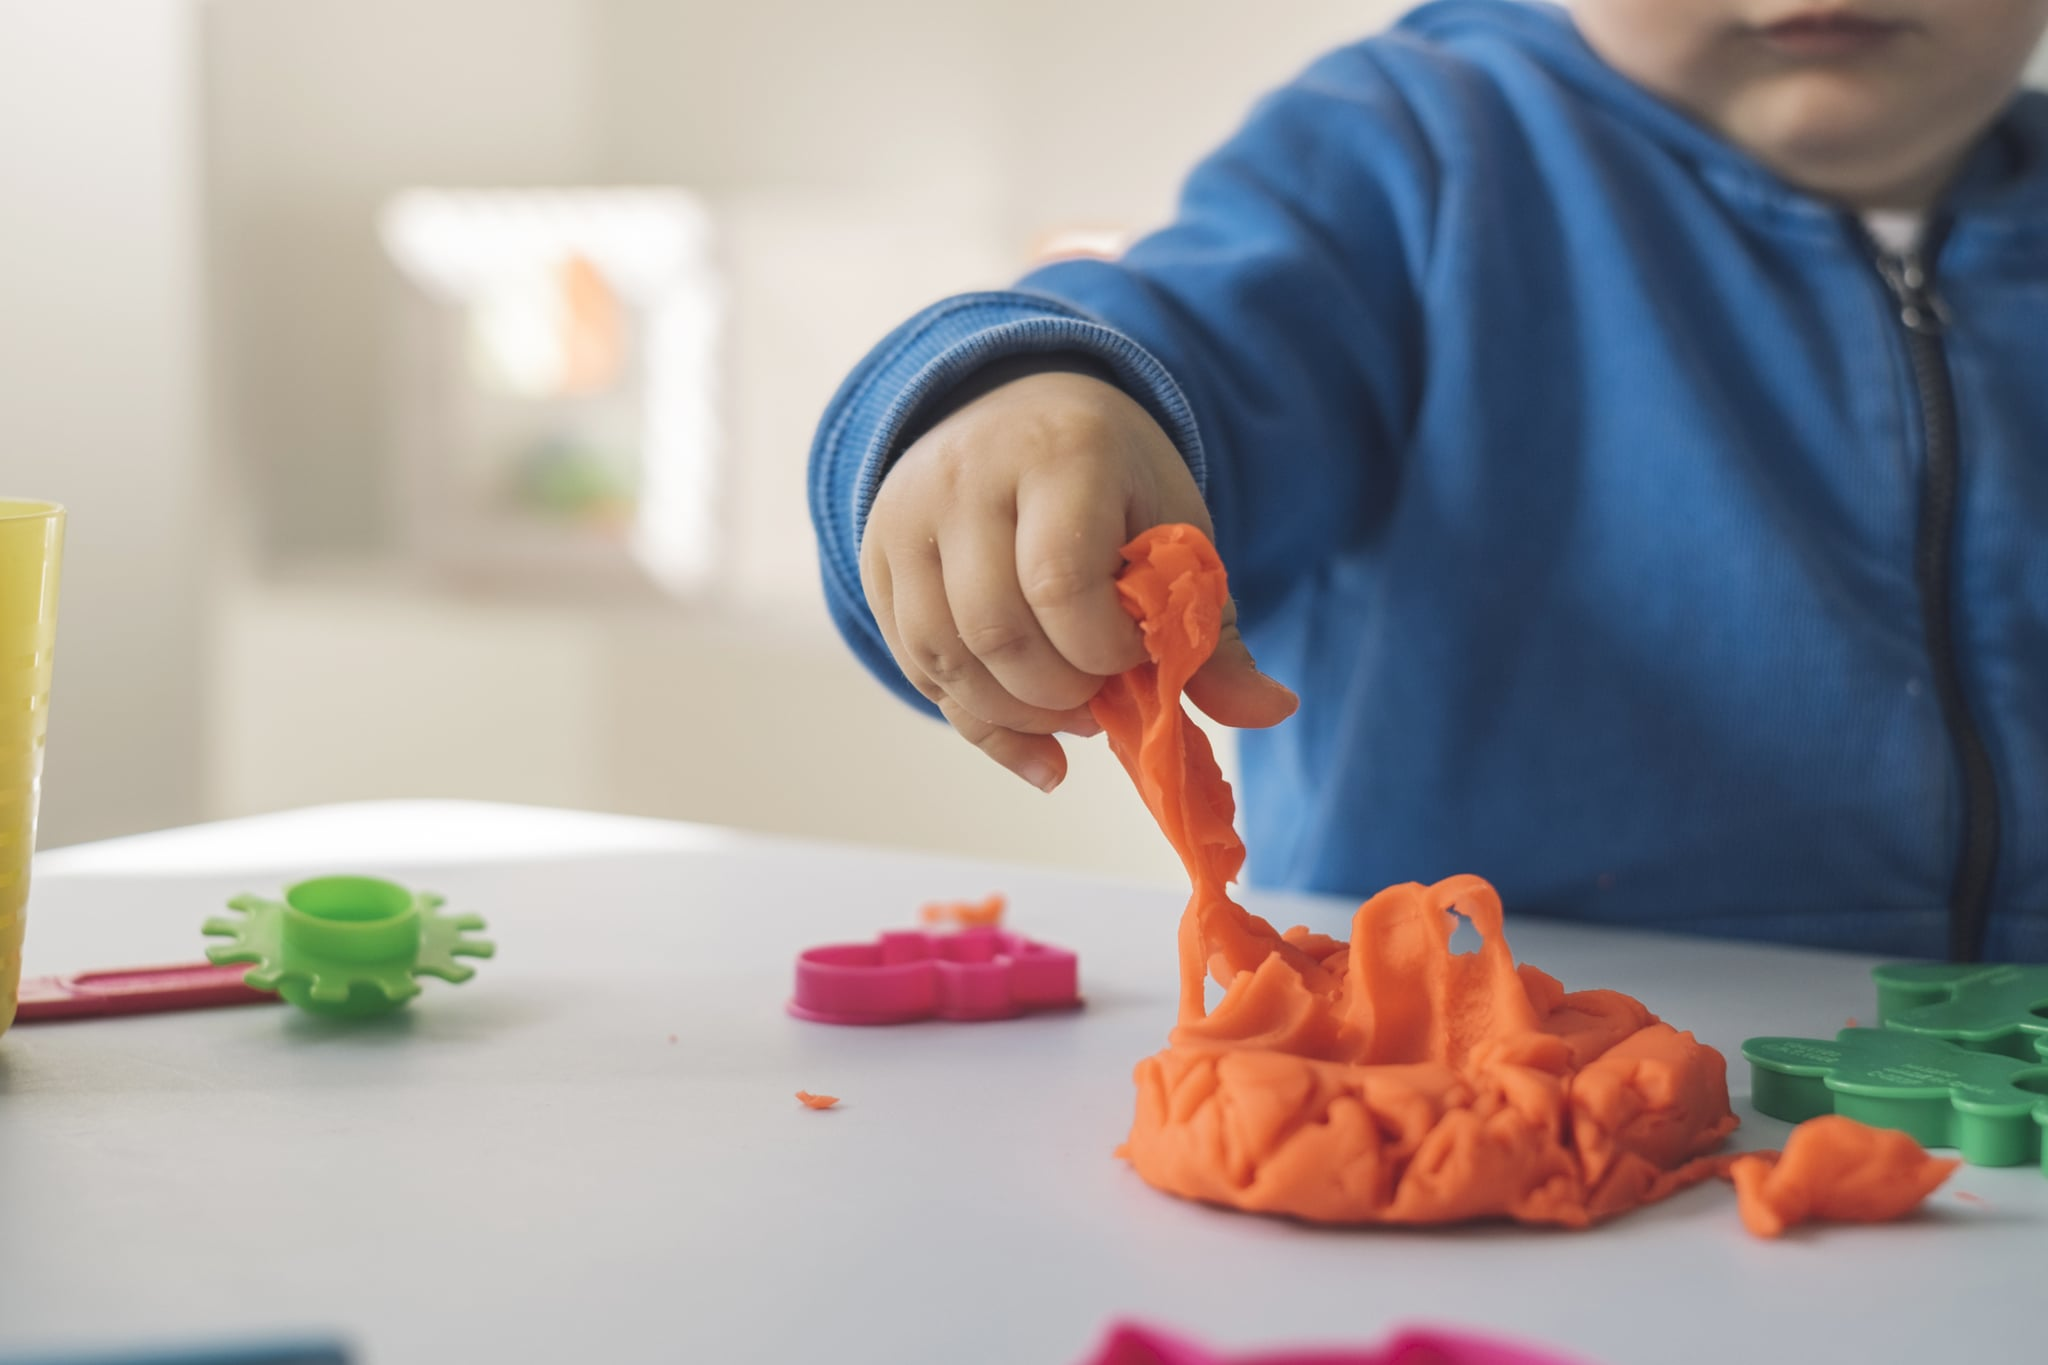 Make This Scented Play Dough Recipe With Your Kids Popsugar Family